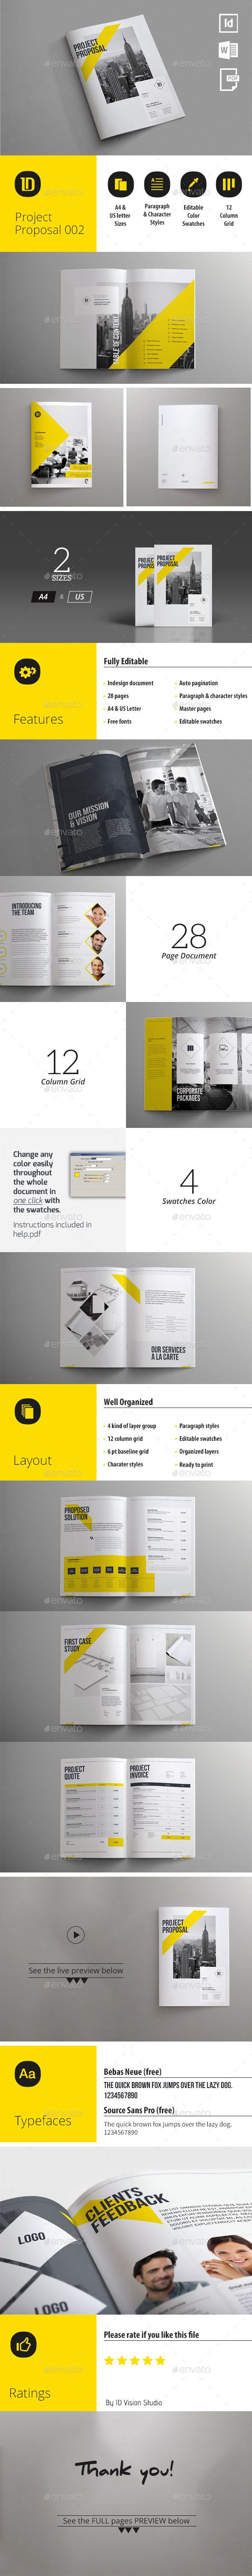 Project Proposal Template 003 | Project proposal, Proposal templates ...